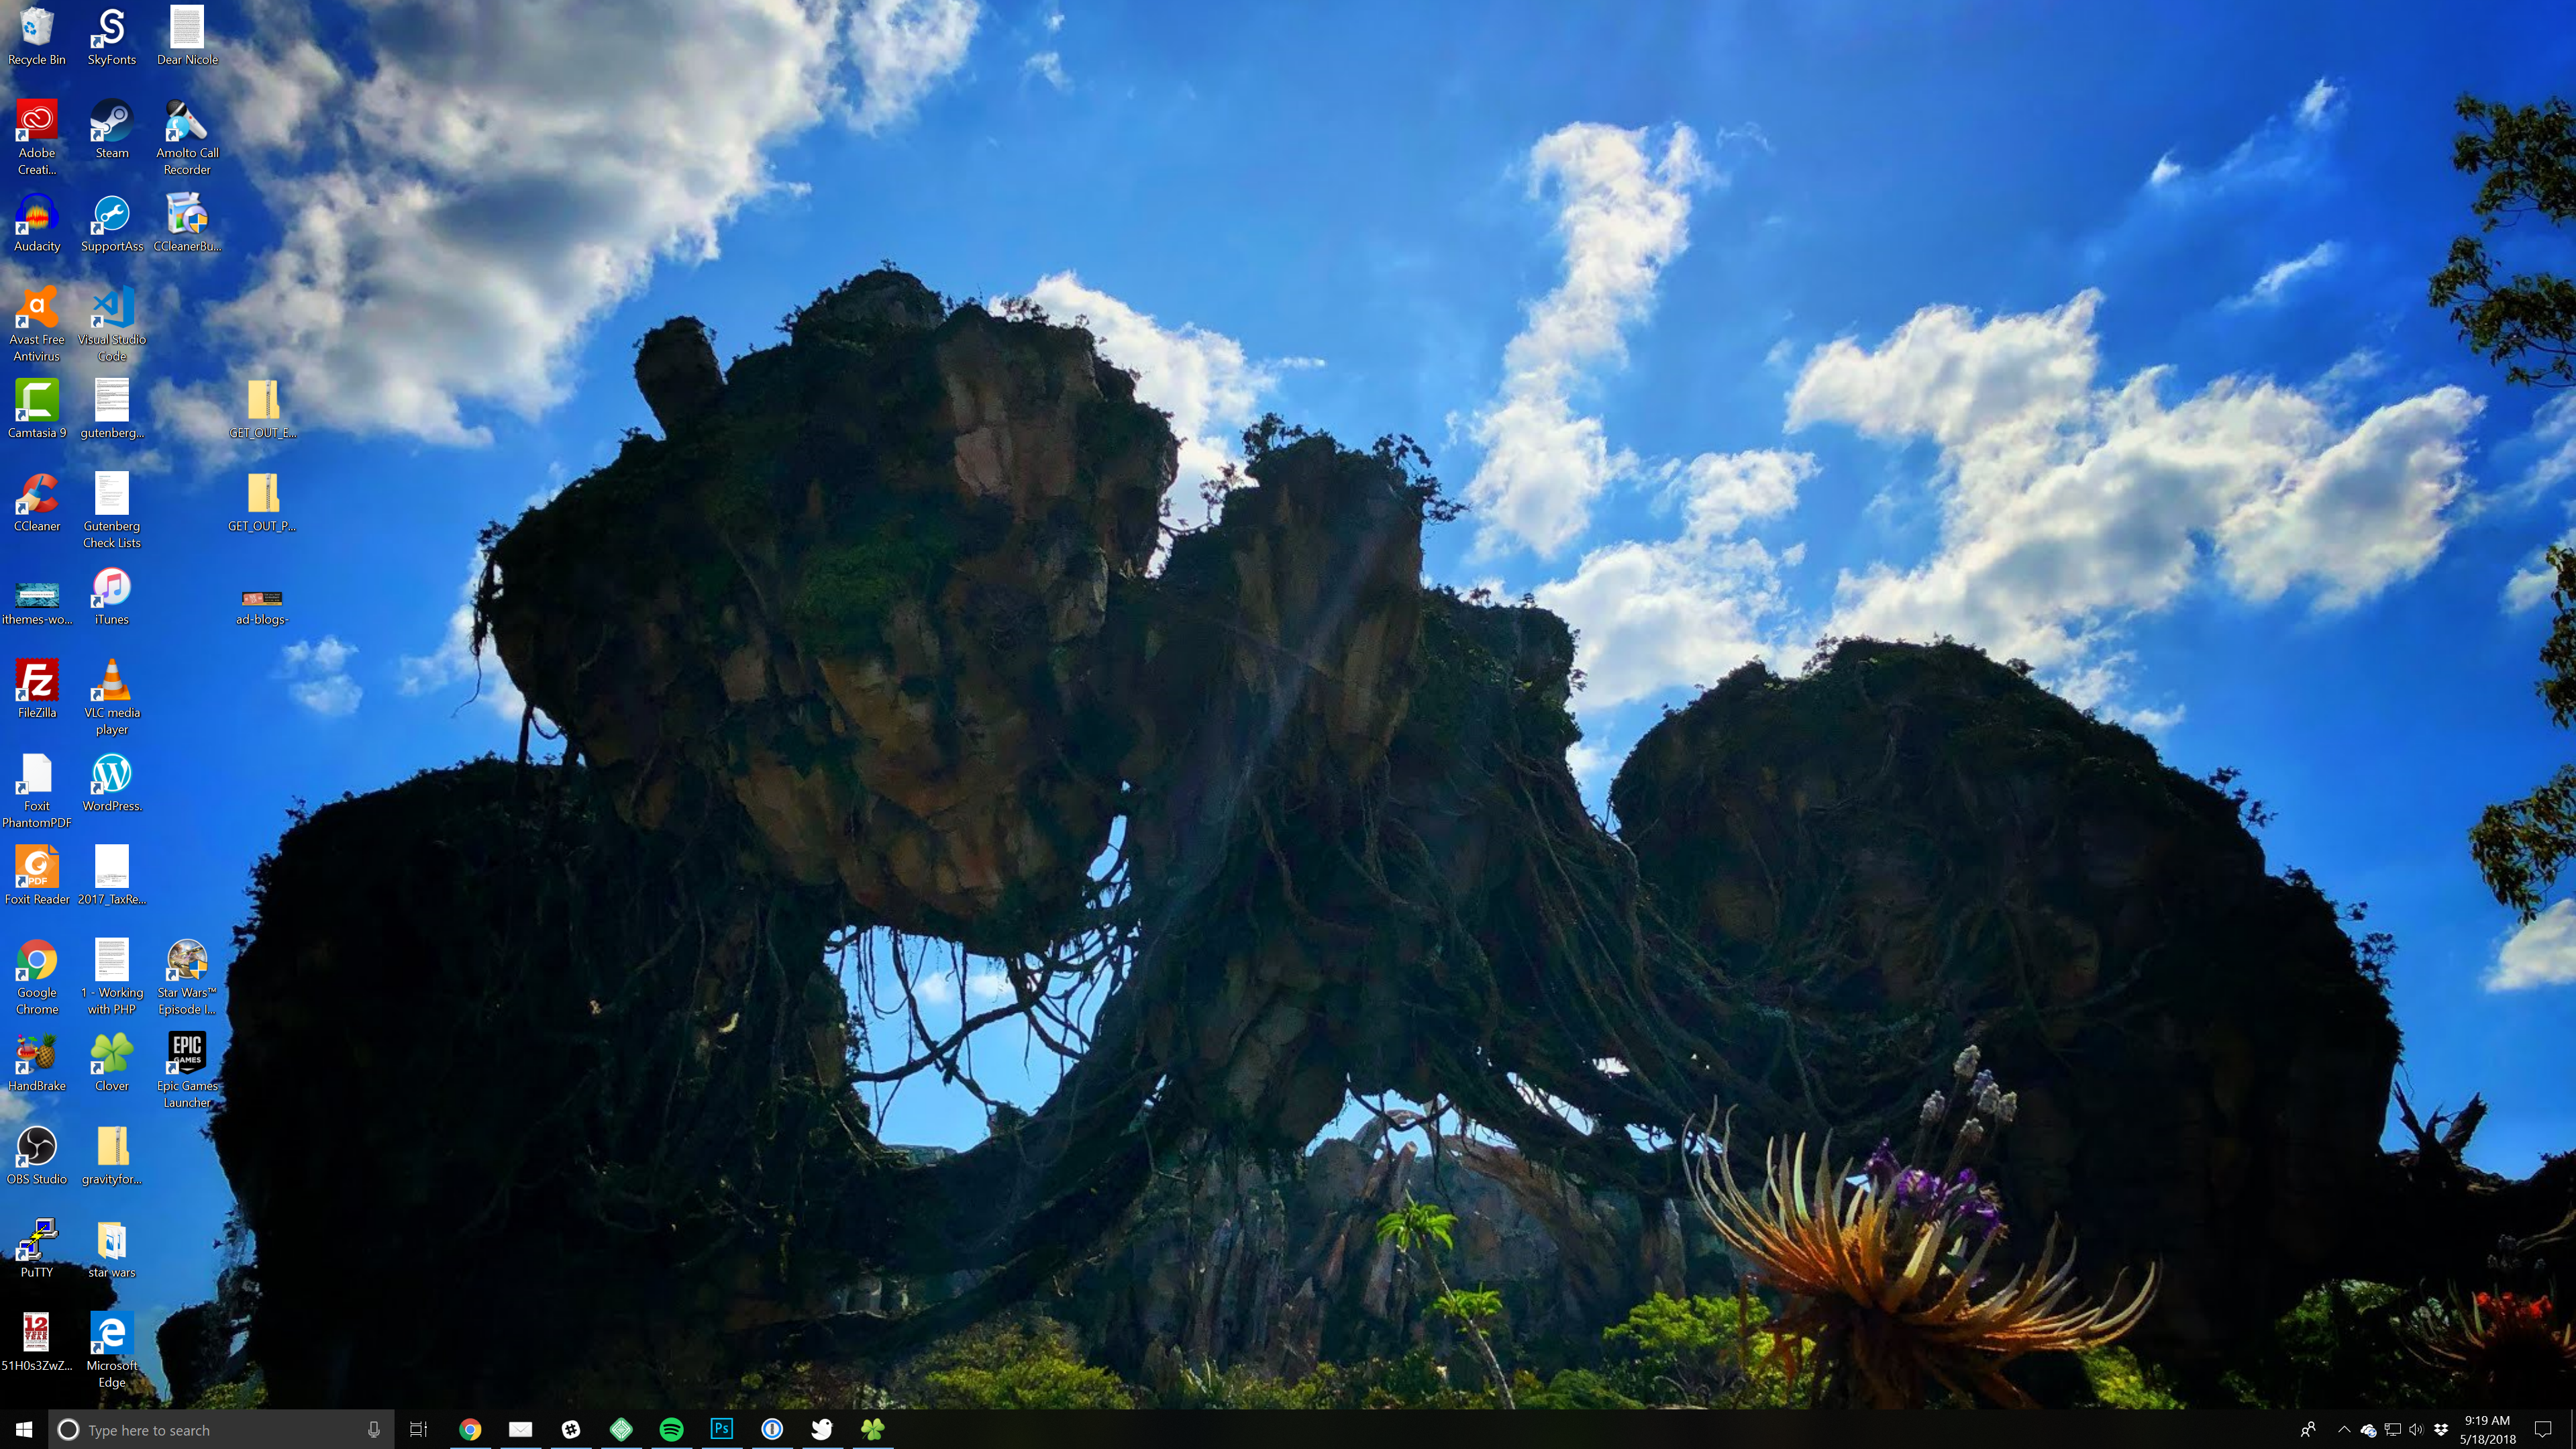 My Windows Desktop